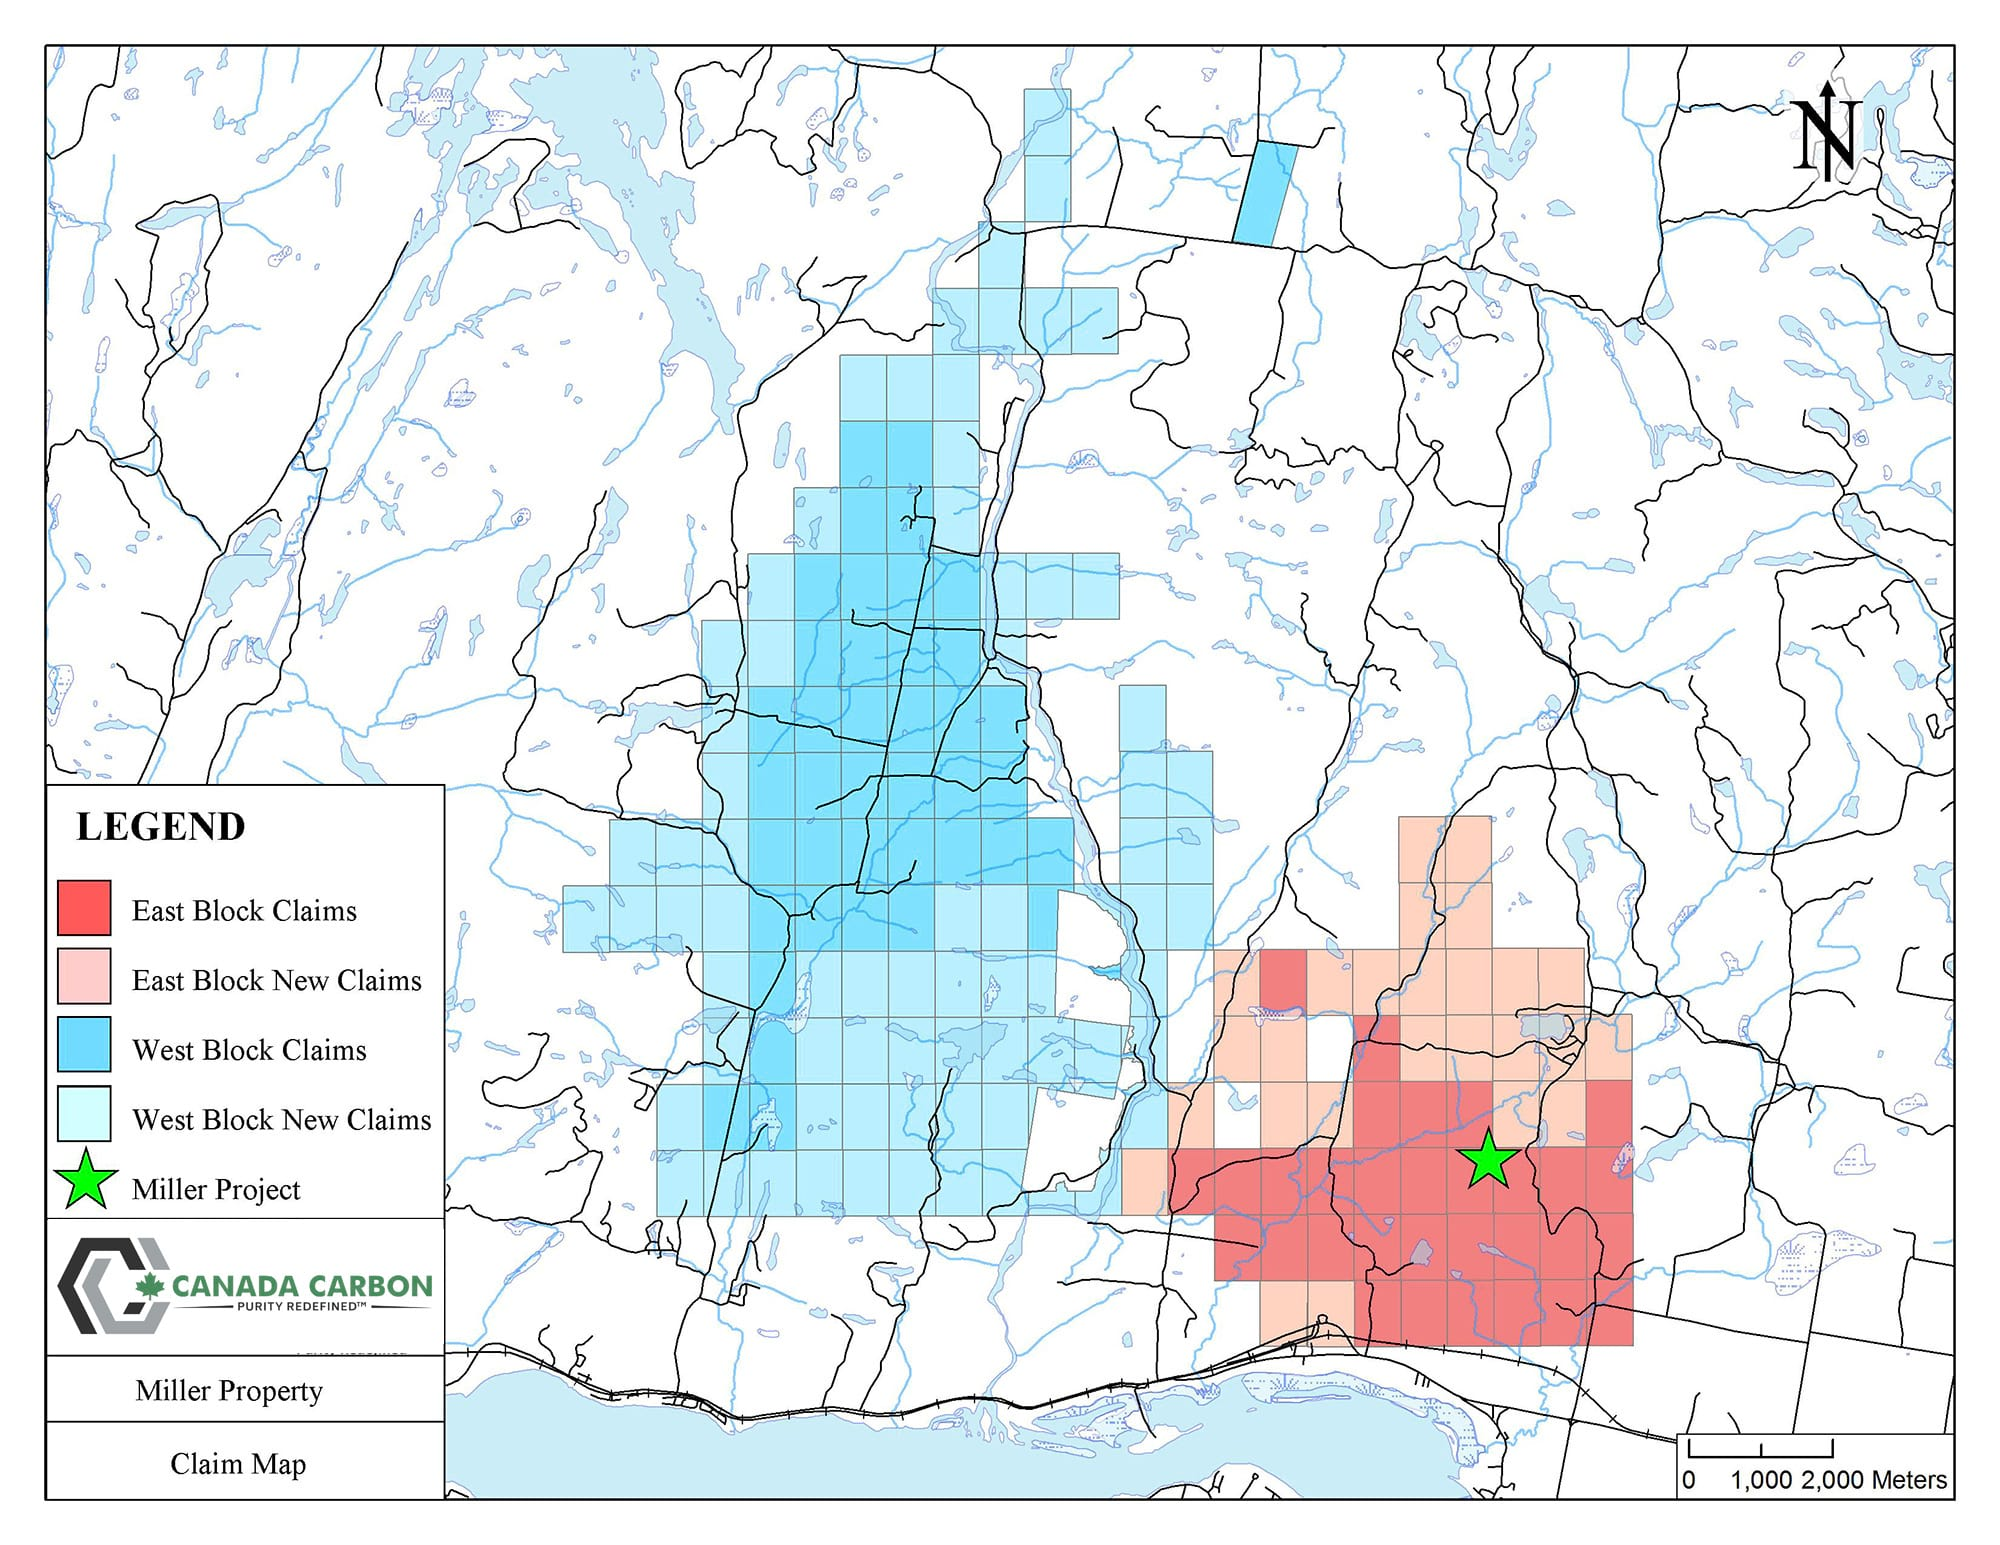 Canada Carbon - Reports, Maps and Data on